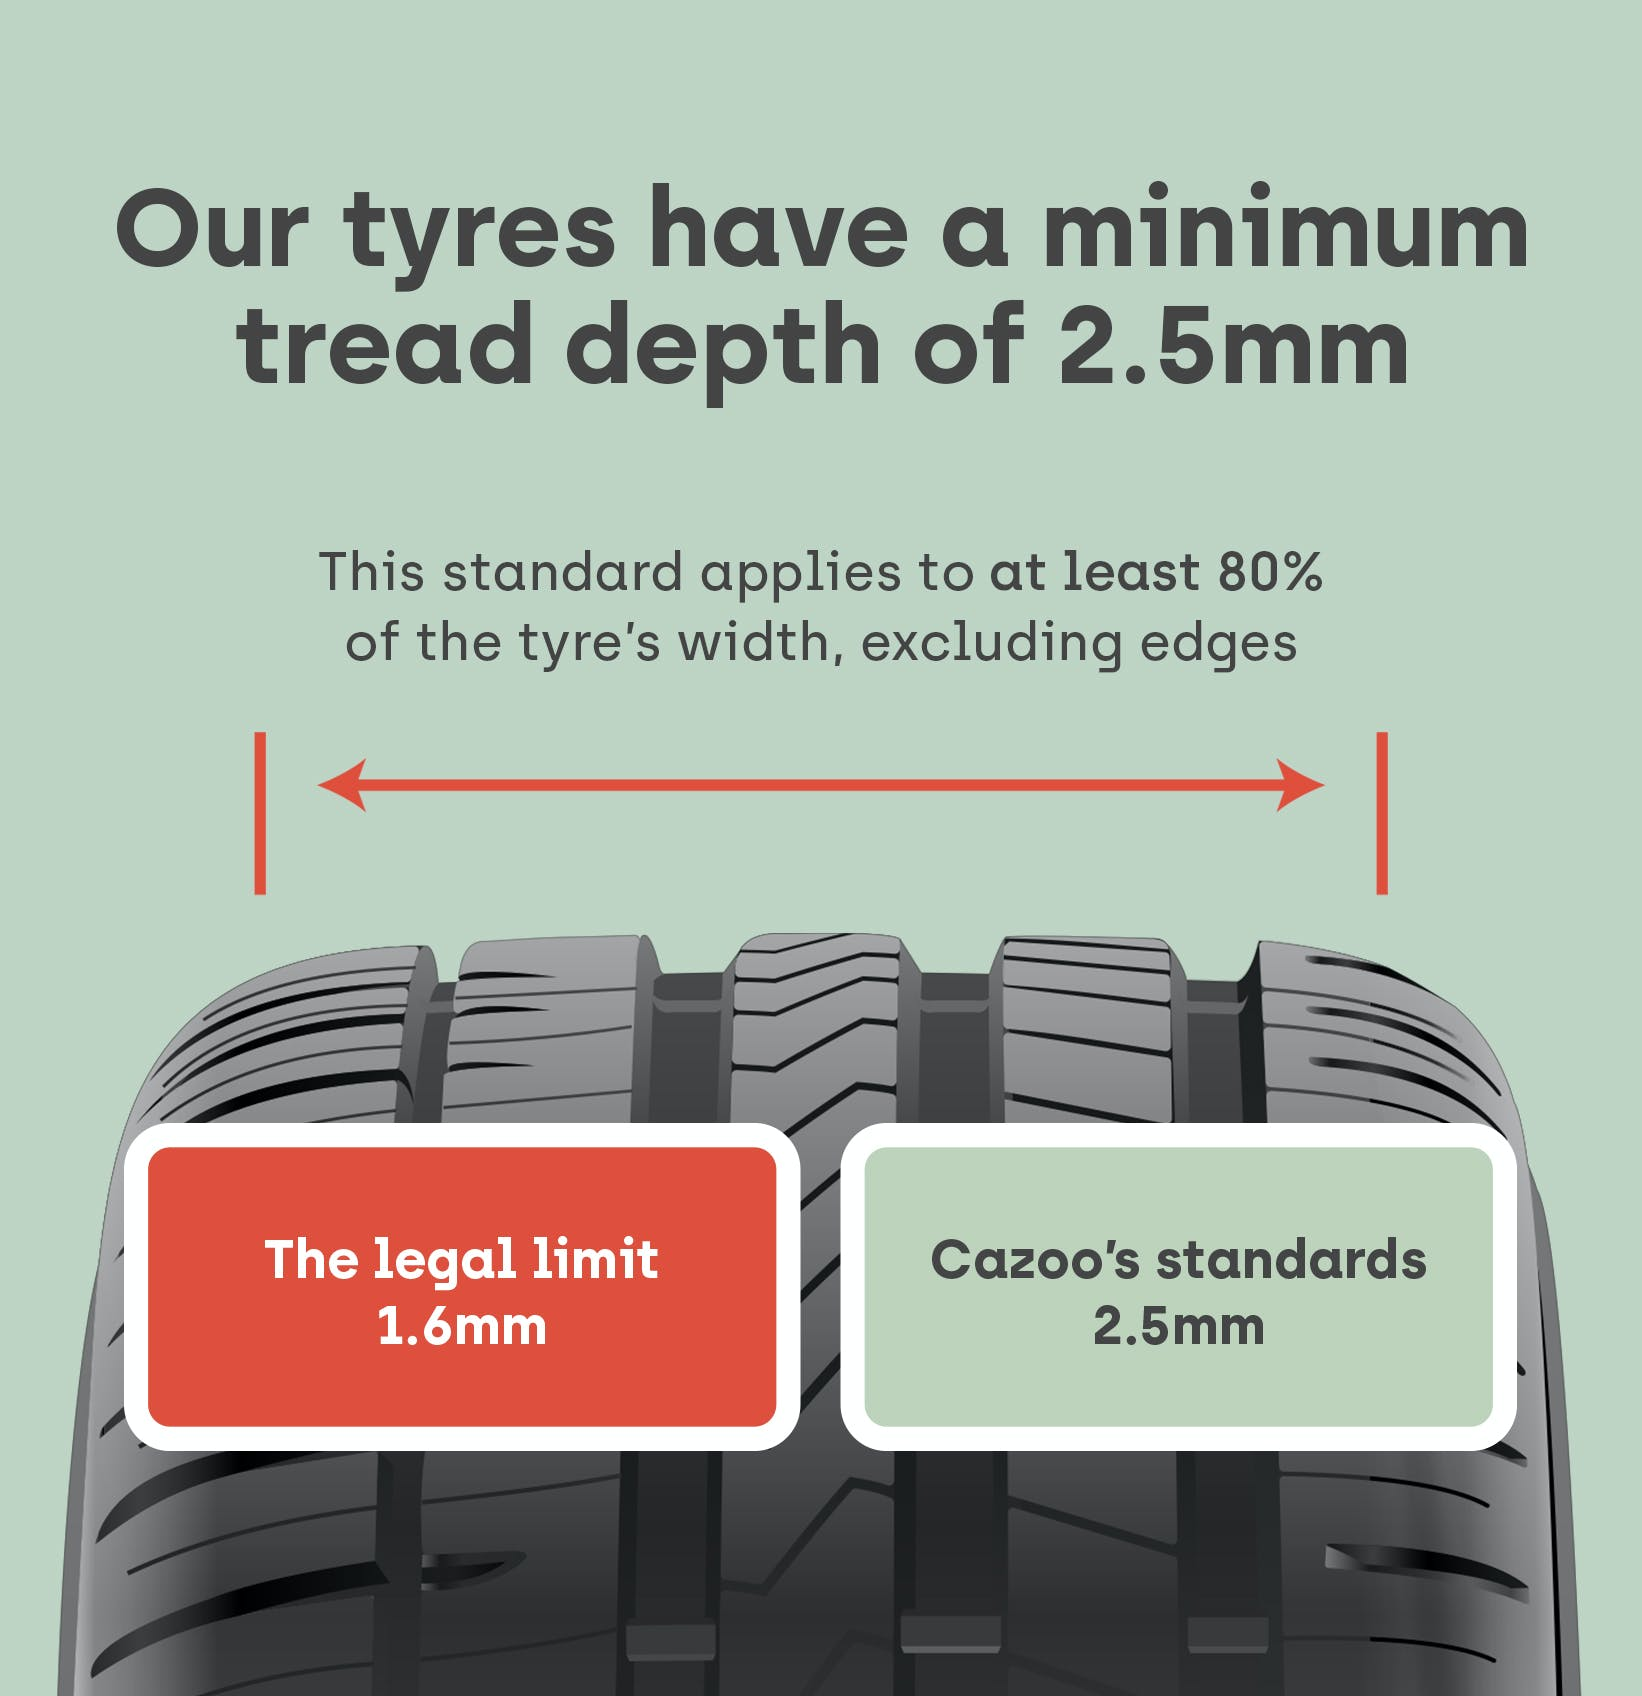 Cazoo's tyre tread depth standards